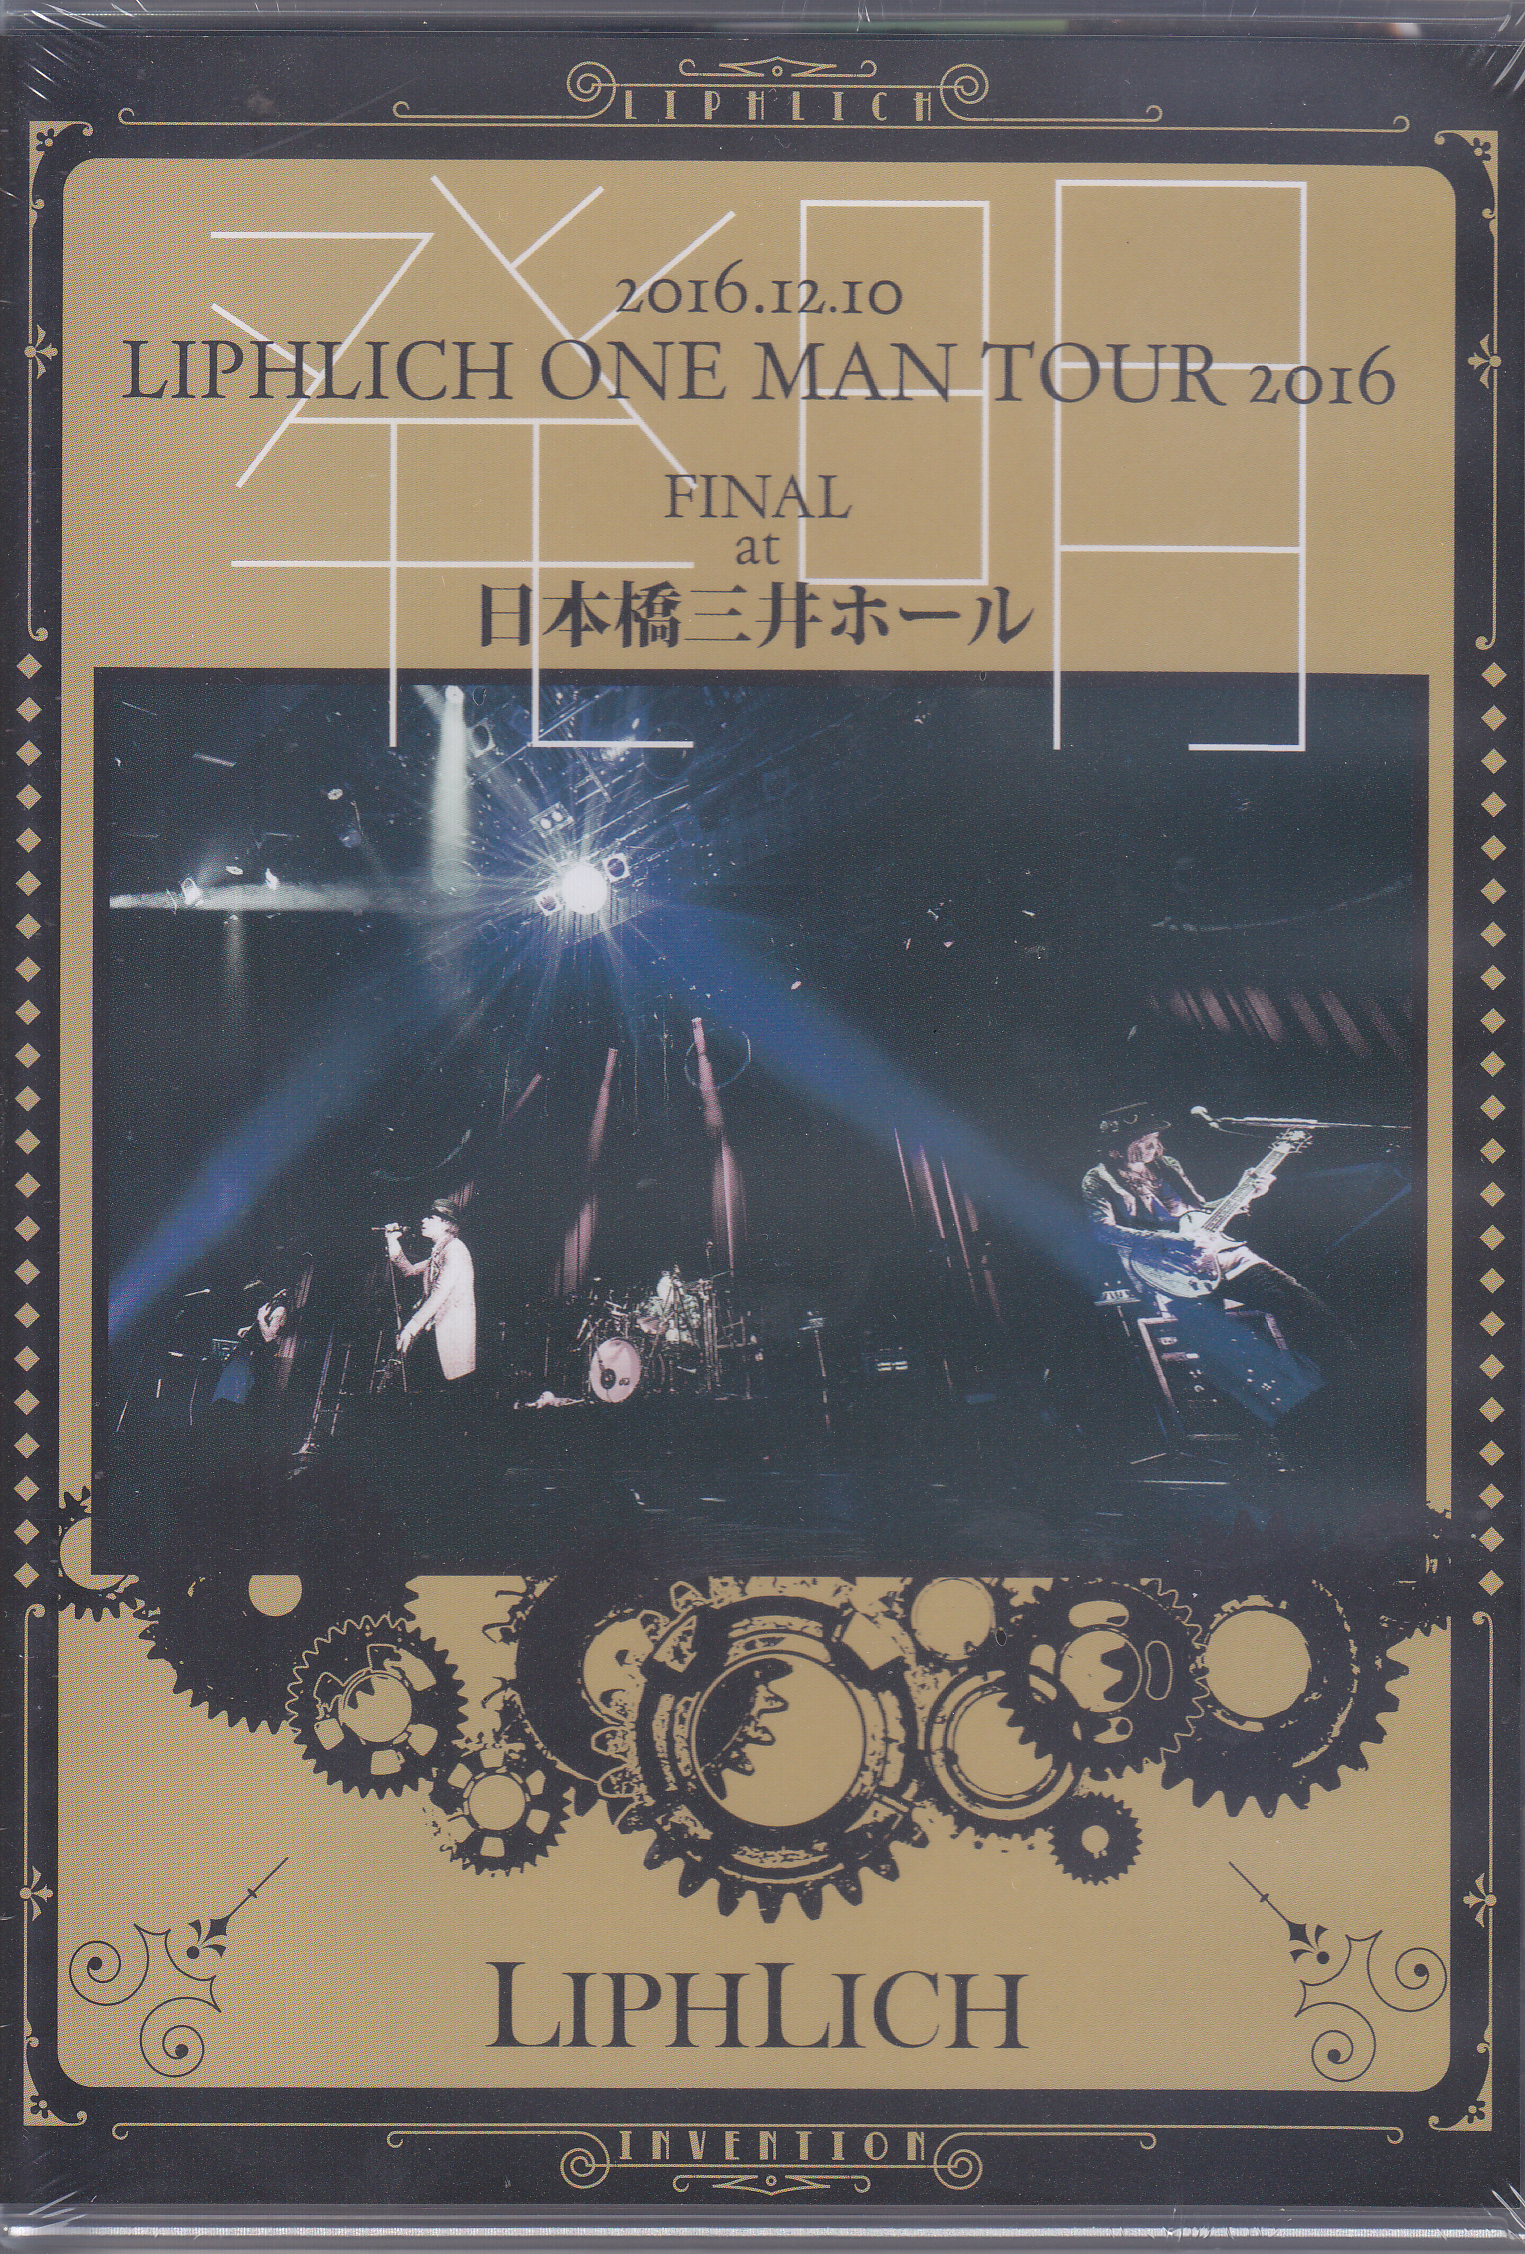 LIPHLICH ( リフリッチ )  の DVD 2016.12.10「LIPHLICH ONE MAN TOUR 2016 発明 FINAL」at 日本橋三井ホール